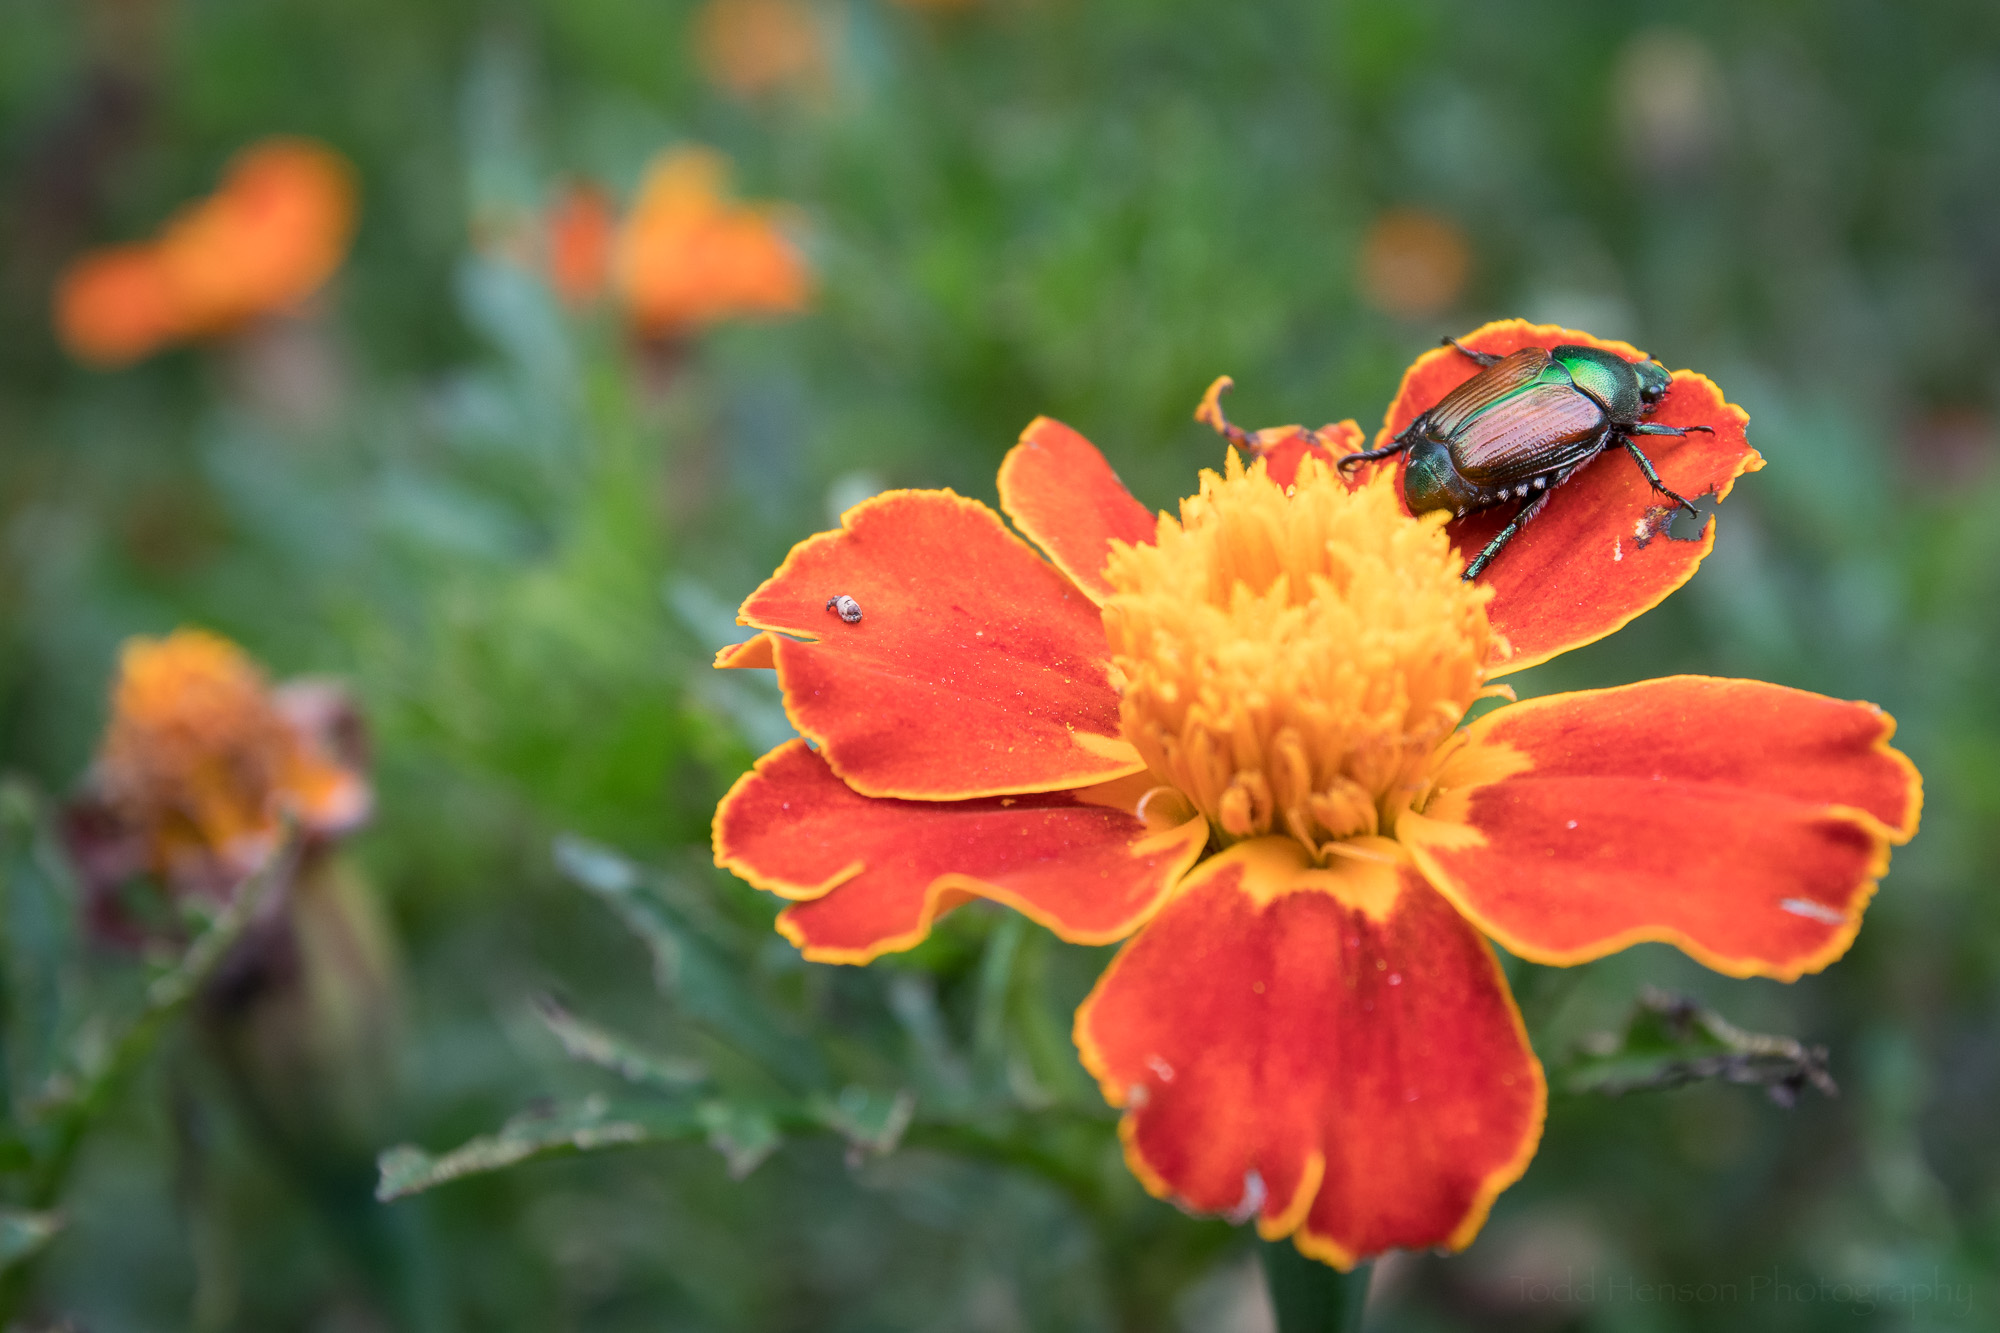 A Japanese Beetle perched on a flower.